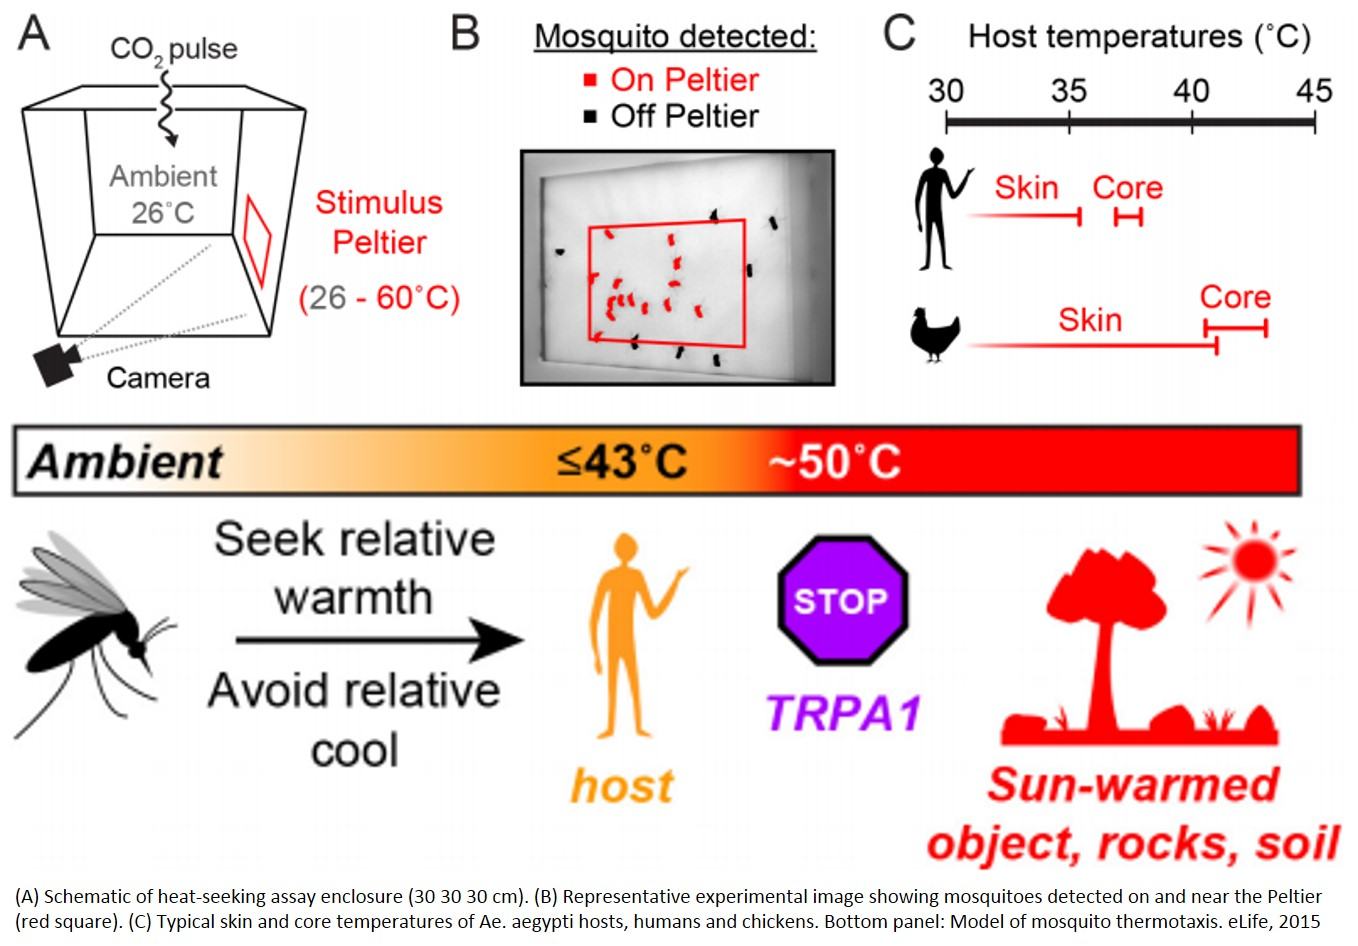 Mosquitoes are tuned to seek out temperatures that match warm-blooded hosts